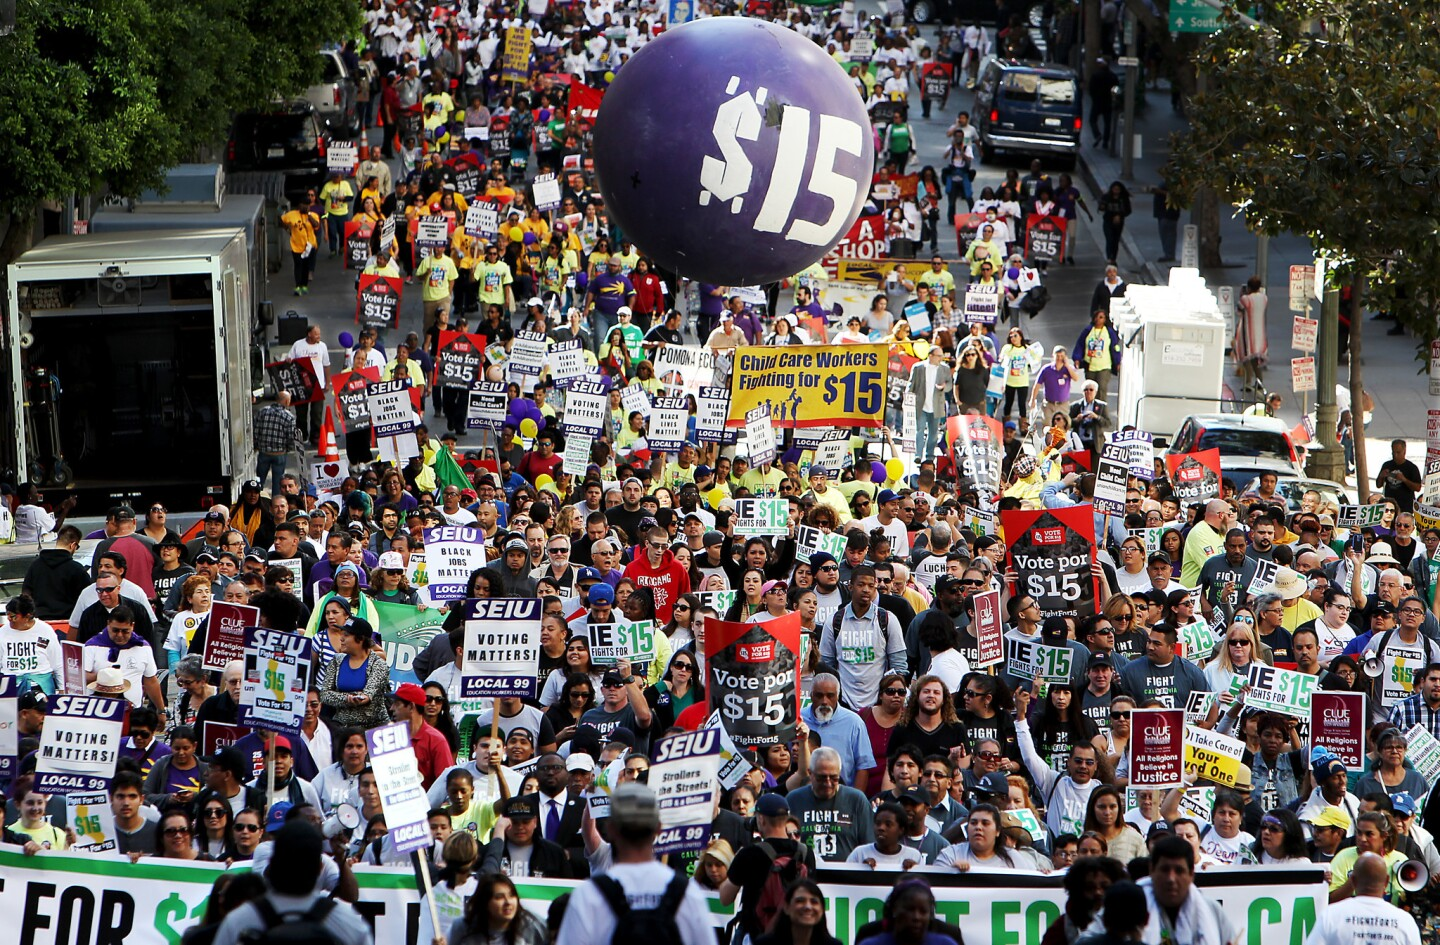 Protesters march through the financial district of Los Angeles on Tuesday to press demands for a minimum wage of $15 per hour.